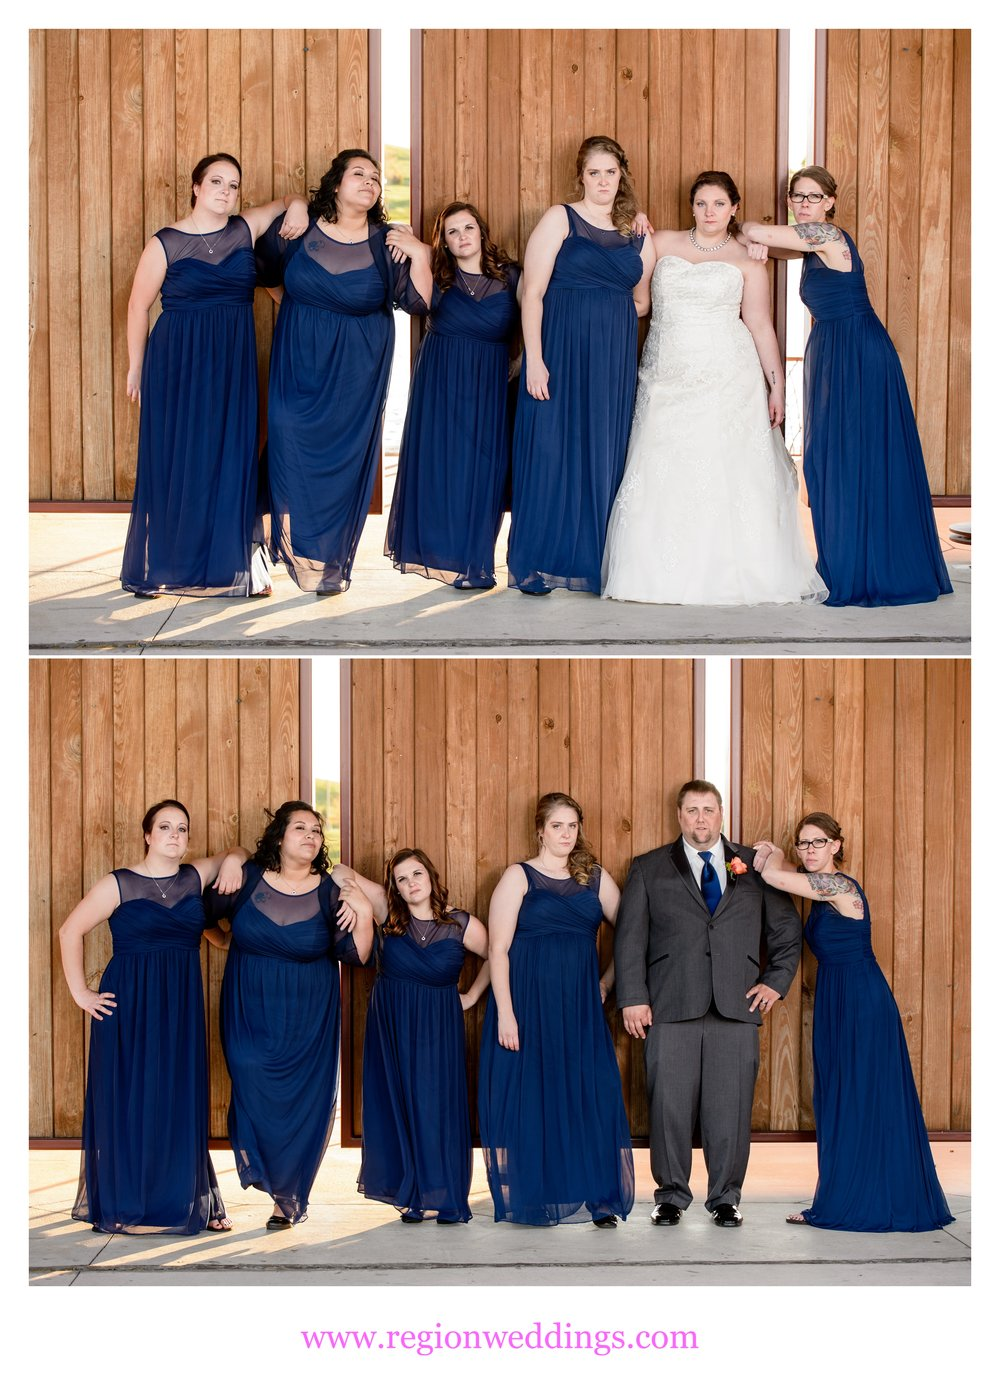 Recreating of the Bridesmaids movie poster.